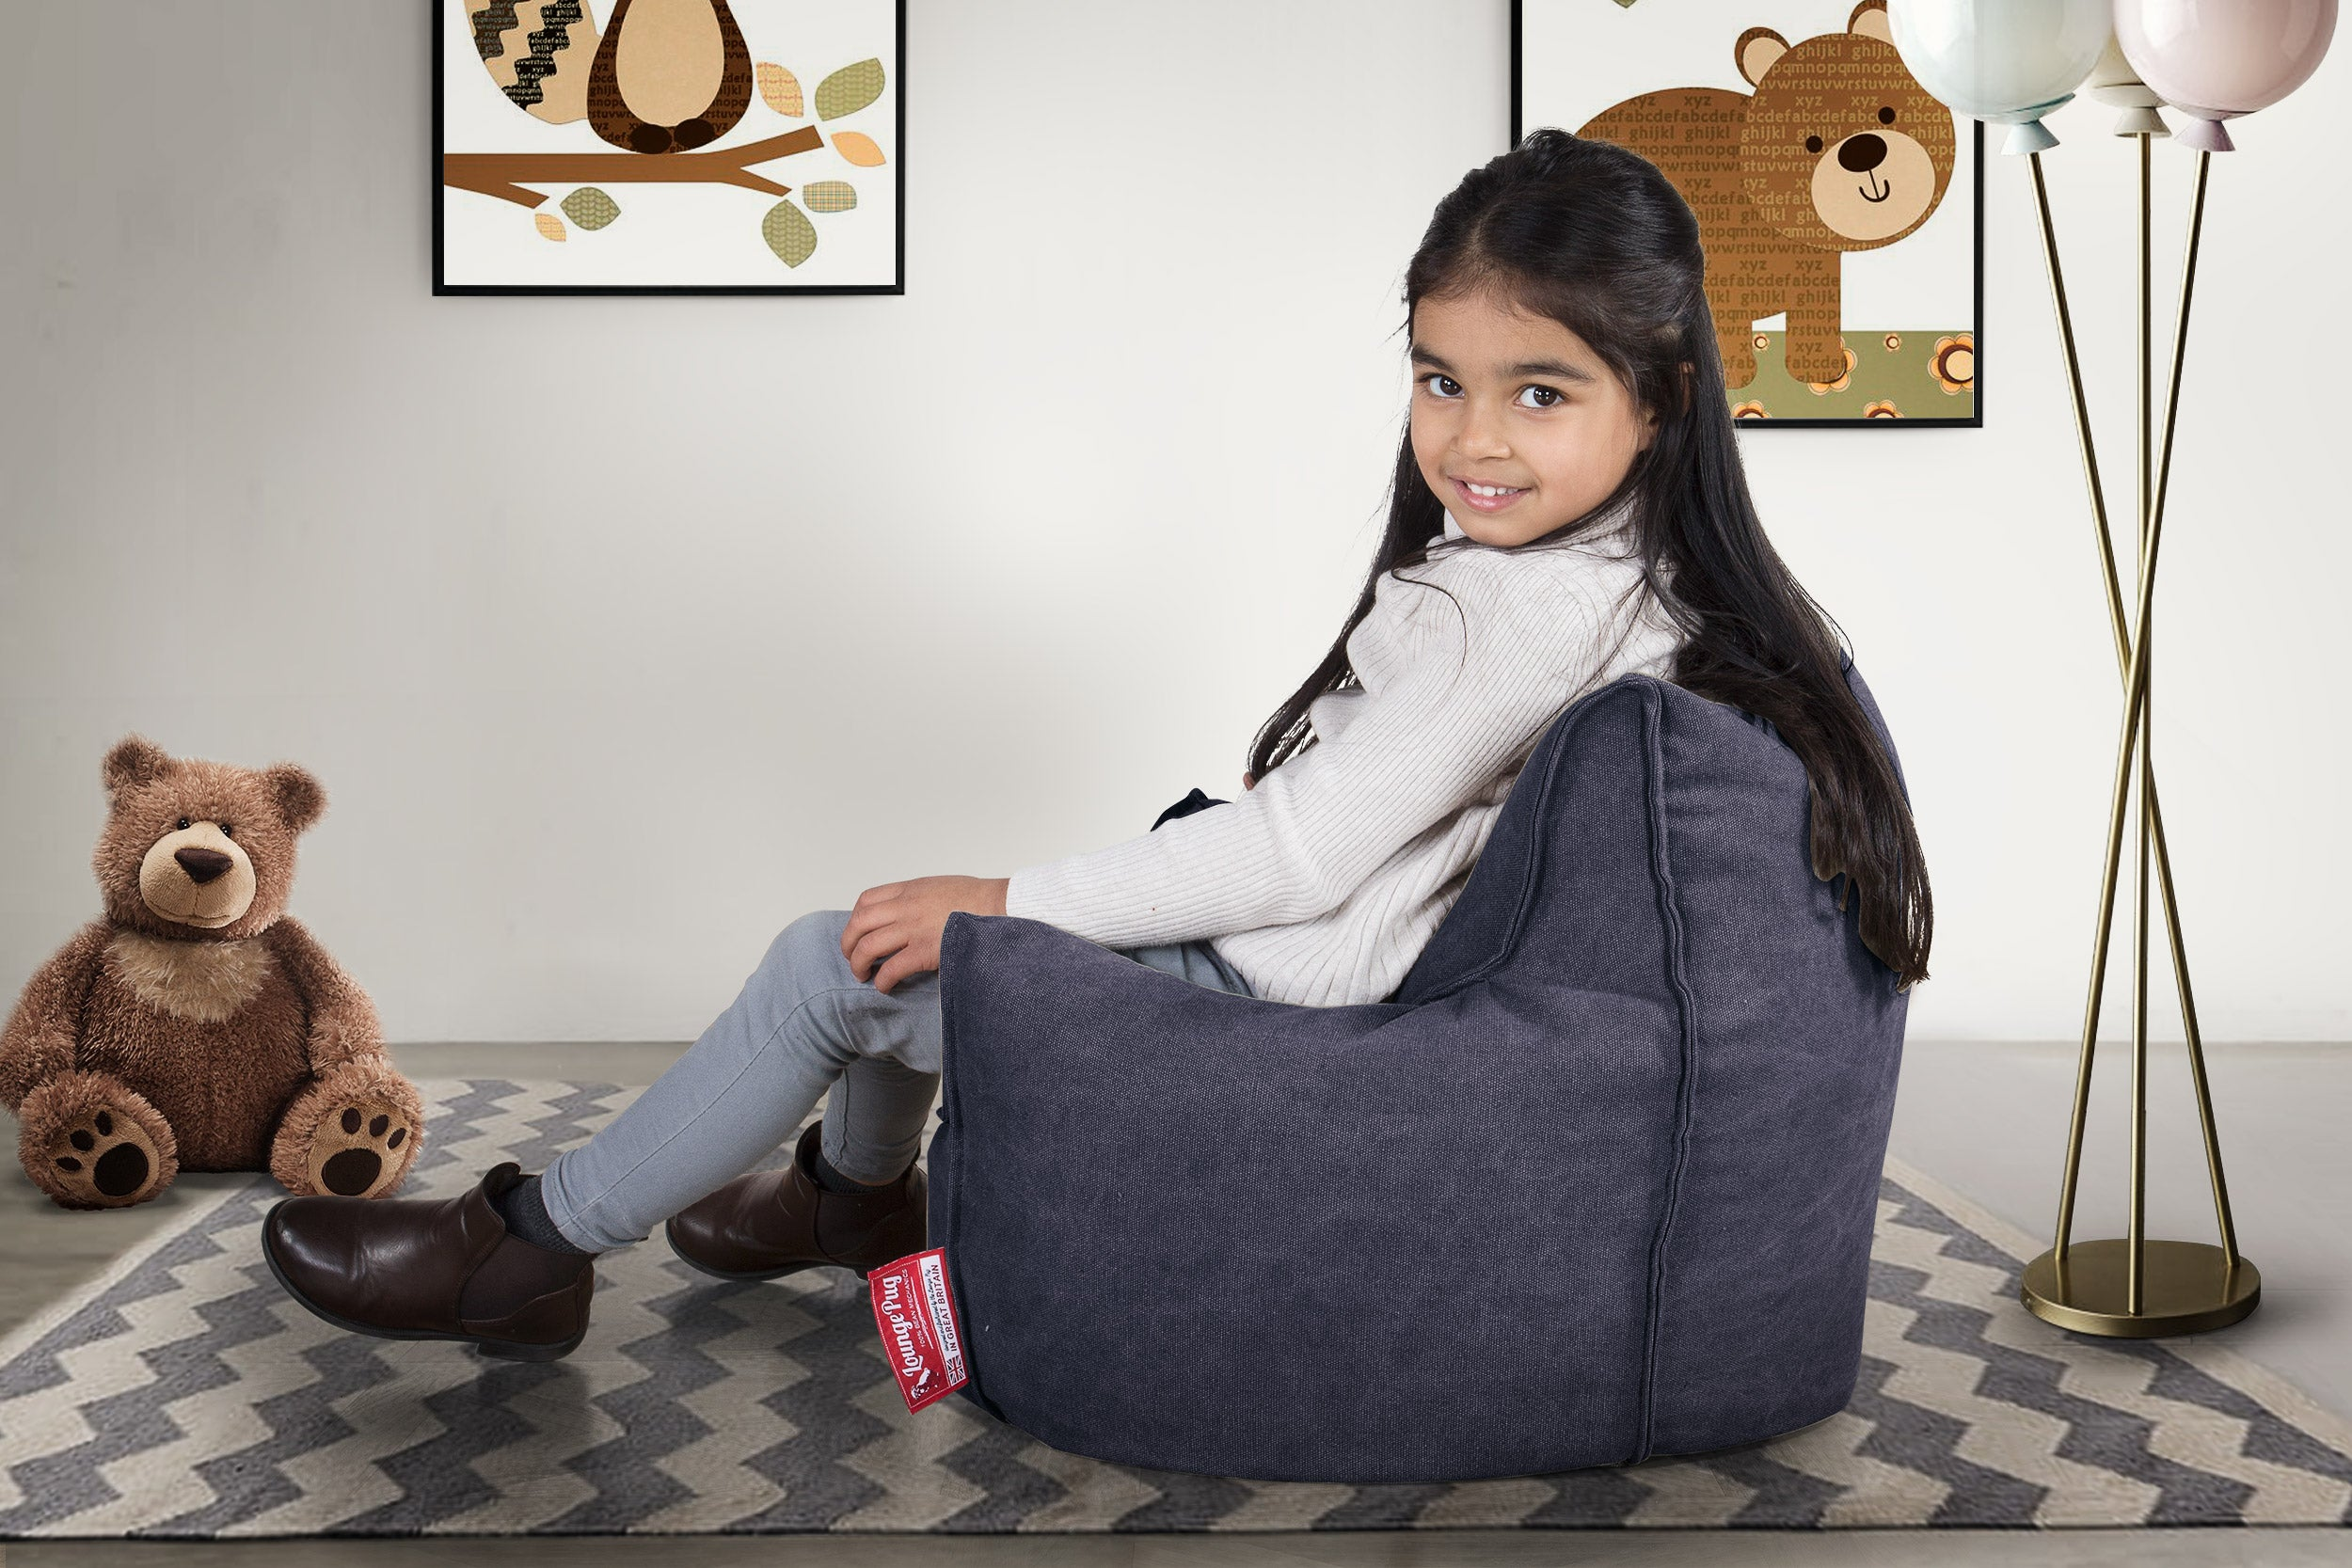 Childrens Toddler Armchair Bean Bag - Denim Navy